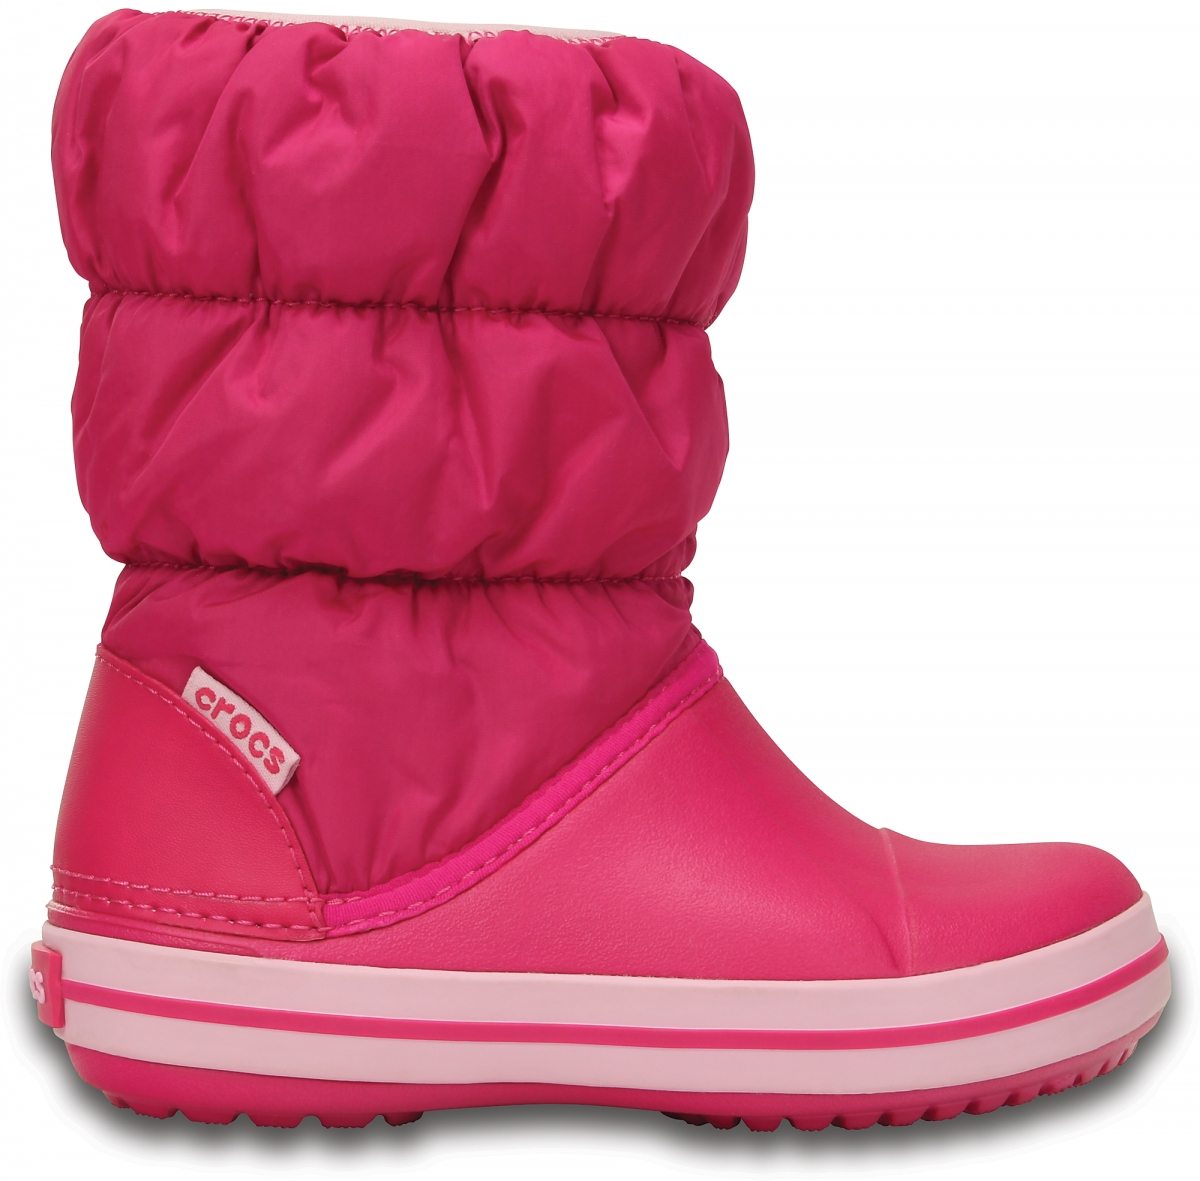 Crocs Winter Puff Boot Kids - Candy Pink, C10 (27-28)